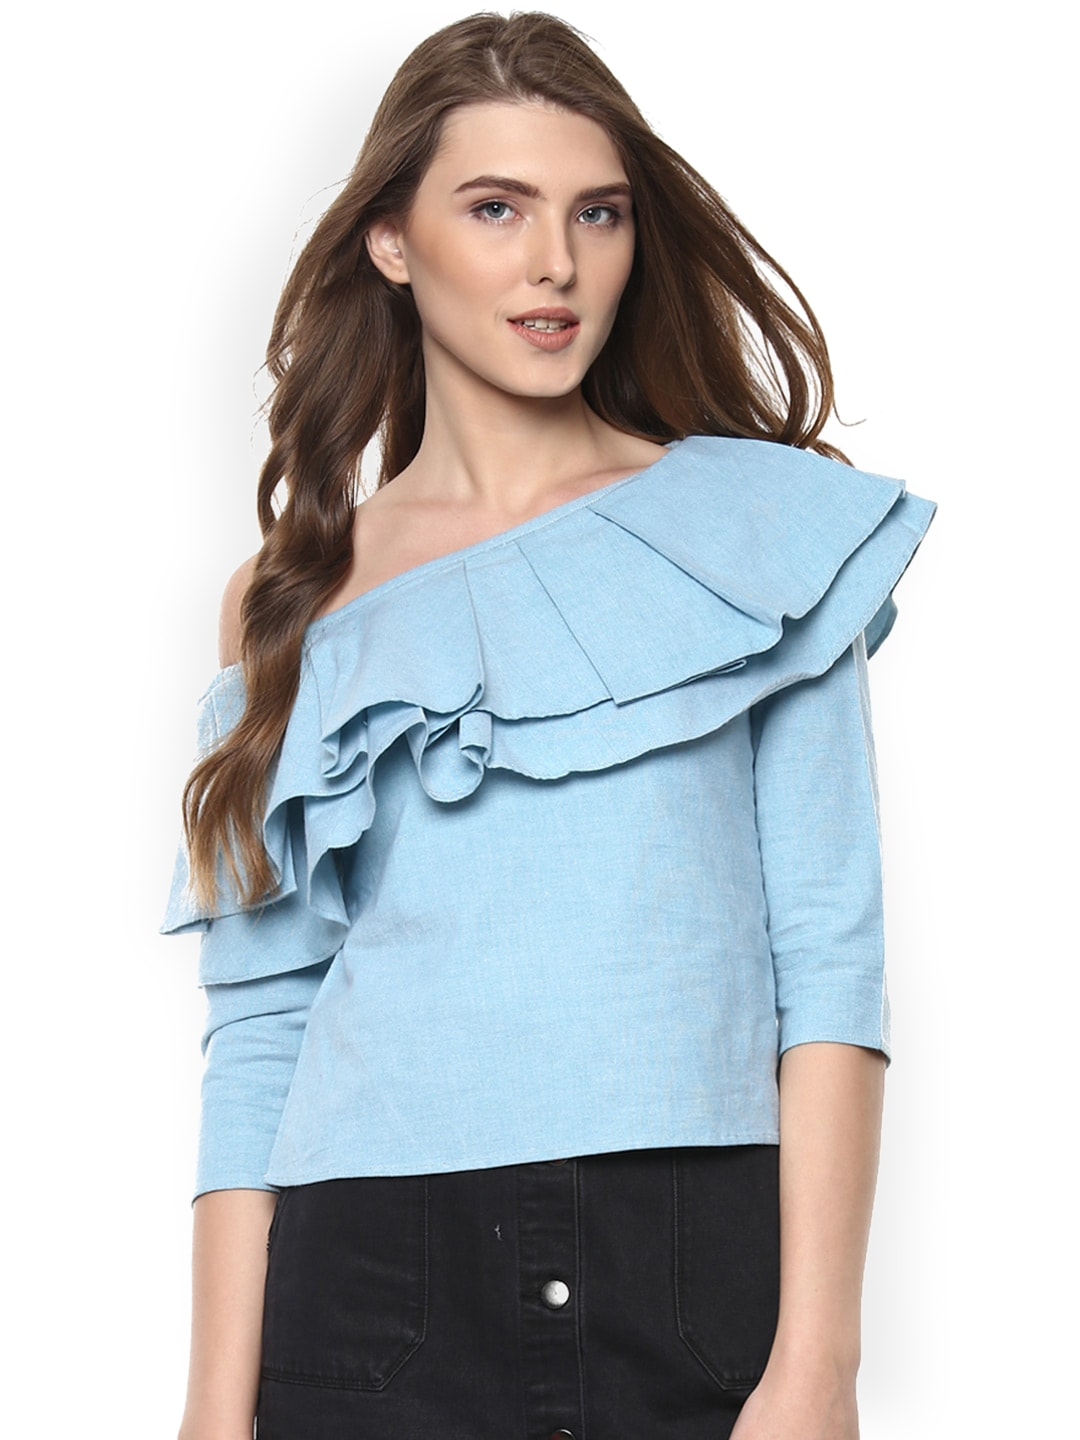 39c84f715a1185 One Shoulder Tops - Buy One Shoulder Tops Online in India